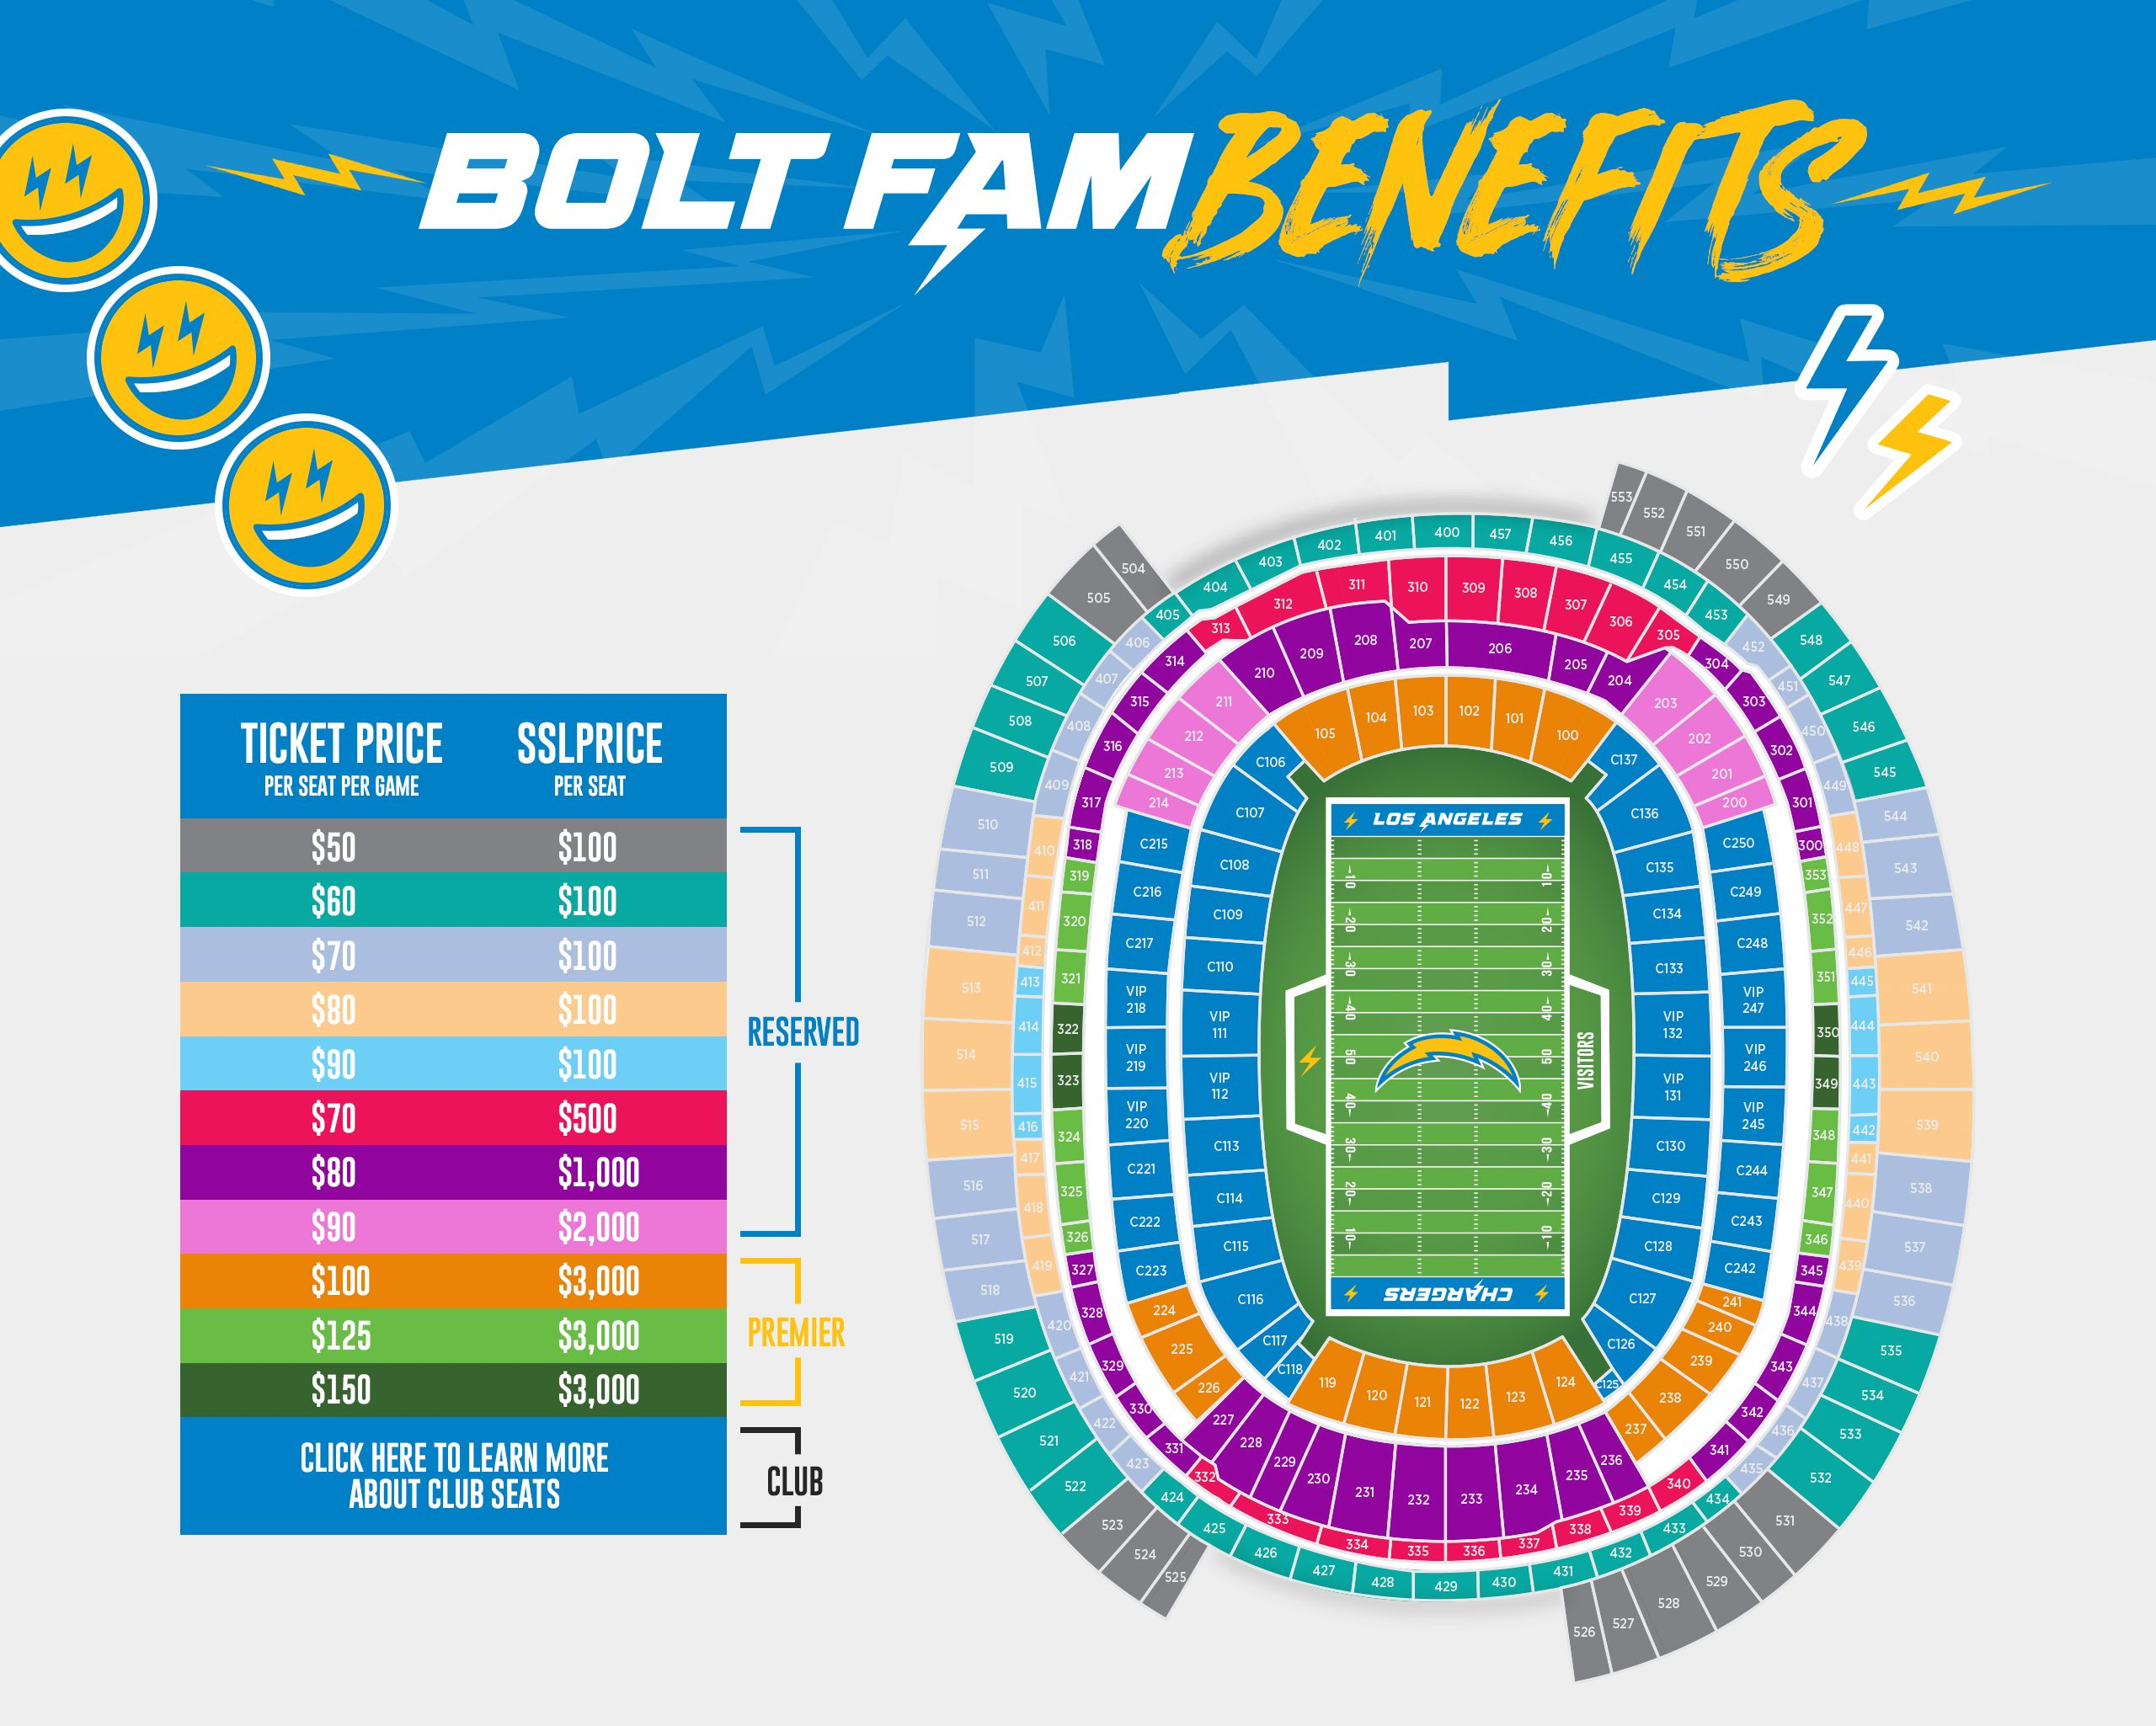 200807_Site_Tickets_BoltFam_Benefits_Landing_Page_Header